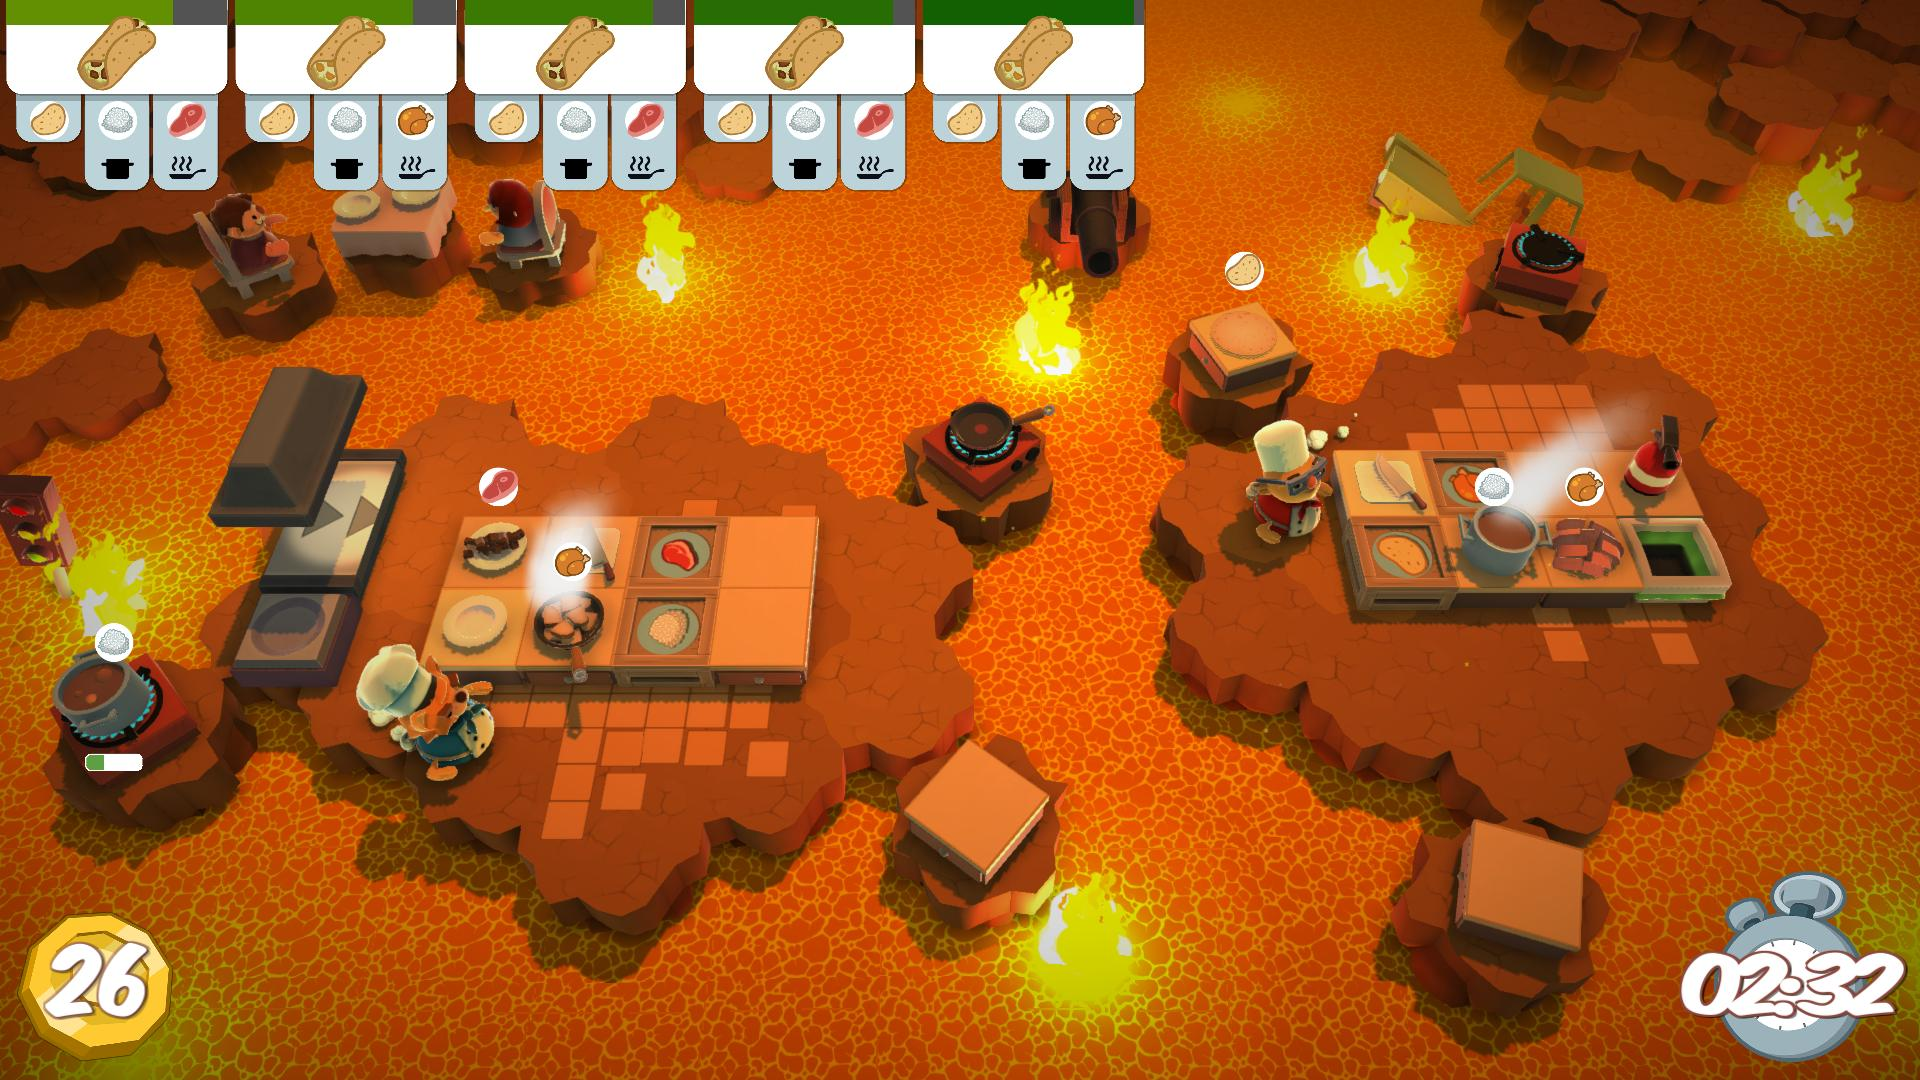 Ordinaire Chaotic Kitchen Simulator Overcooked Out Now, Serves Up Launch Trailer | PC  Gamer